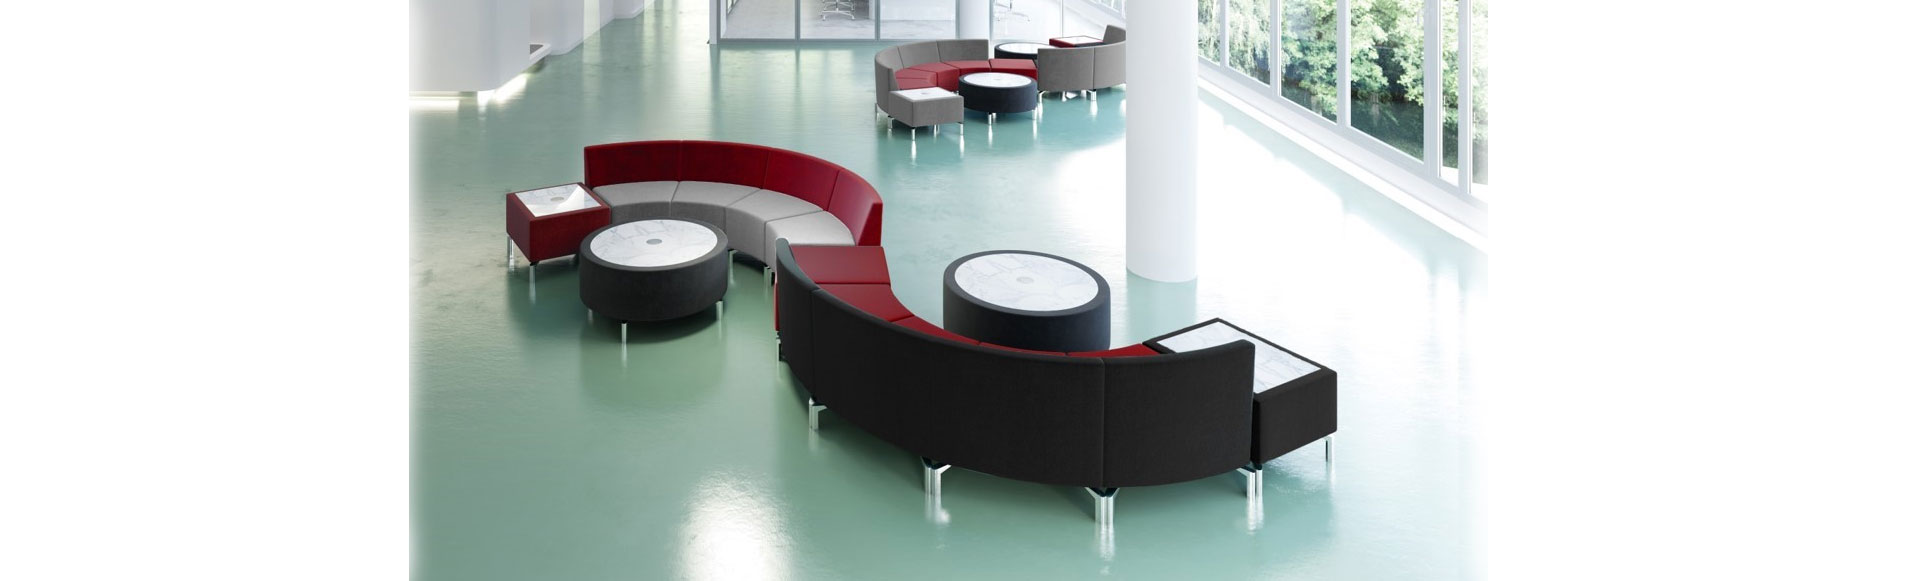 Jefferson Lounge series of modular furniture